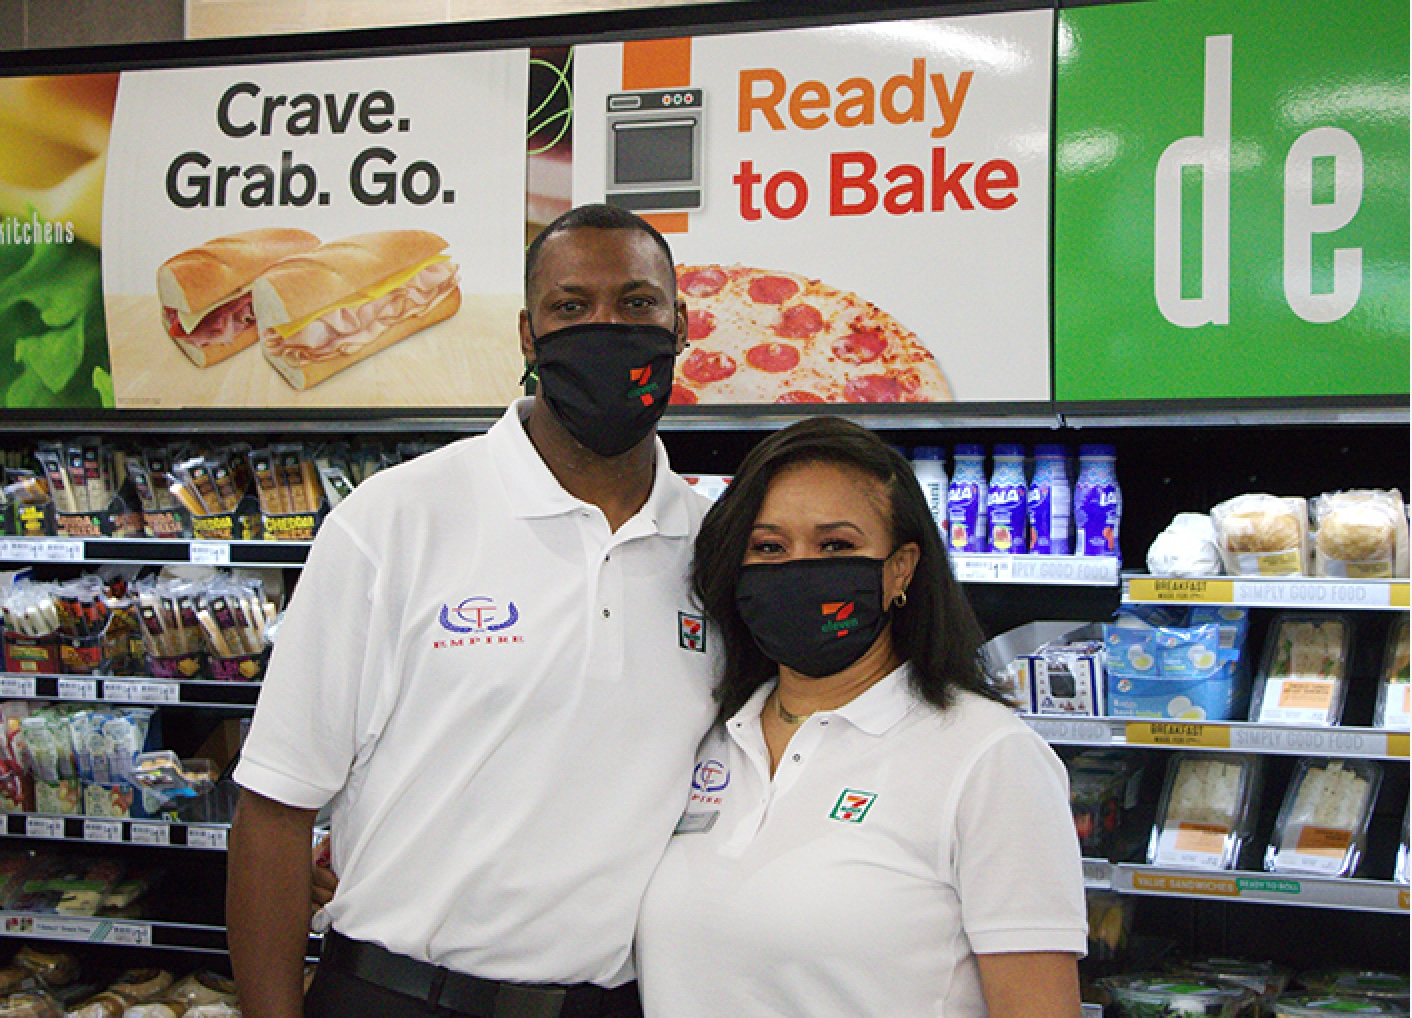 Texas-veterans-Charles-and-Theresa-Williams-at-their-7-Eleven-store-in-Copperas-Cove-Texas.jpg